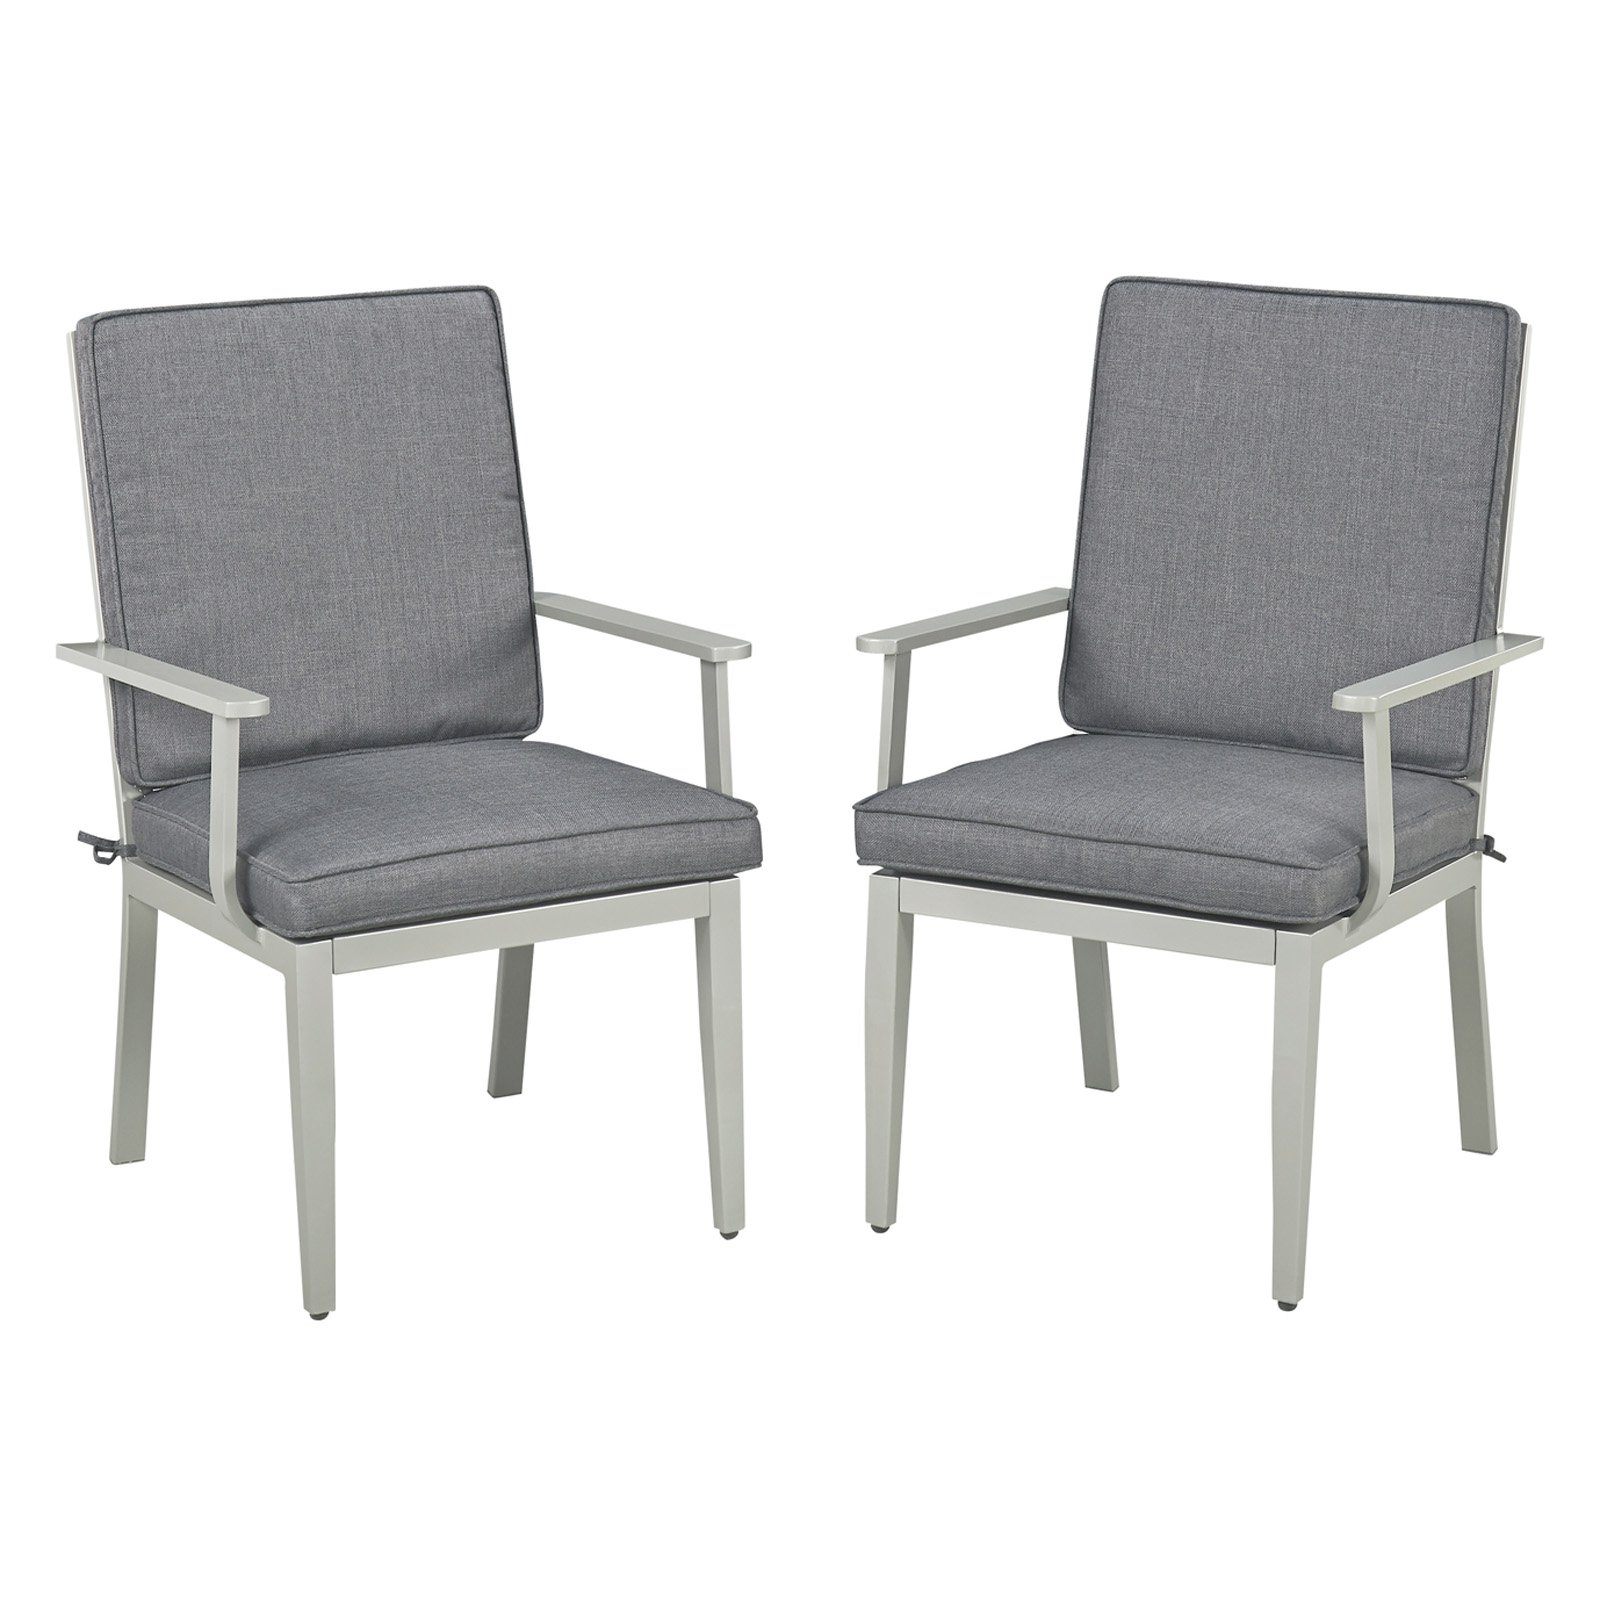 South Beach Pair of Arm Chairs